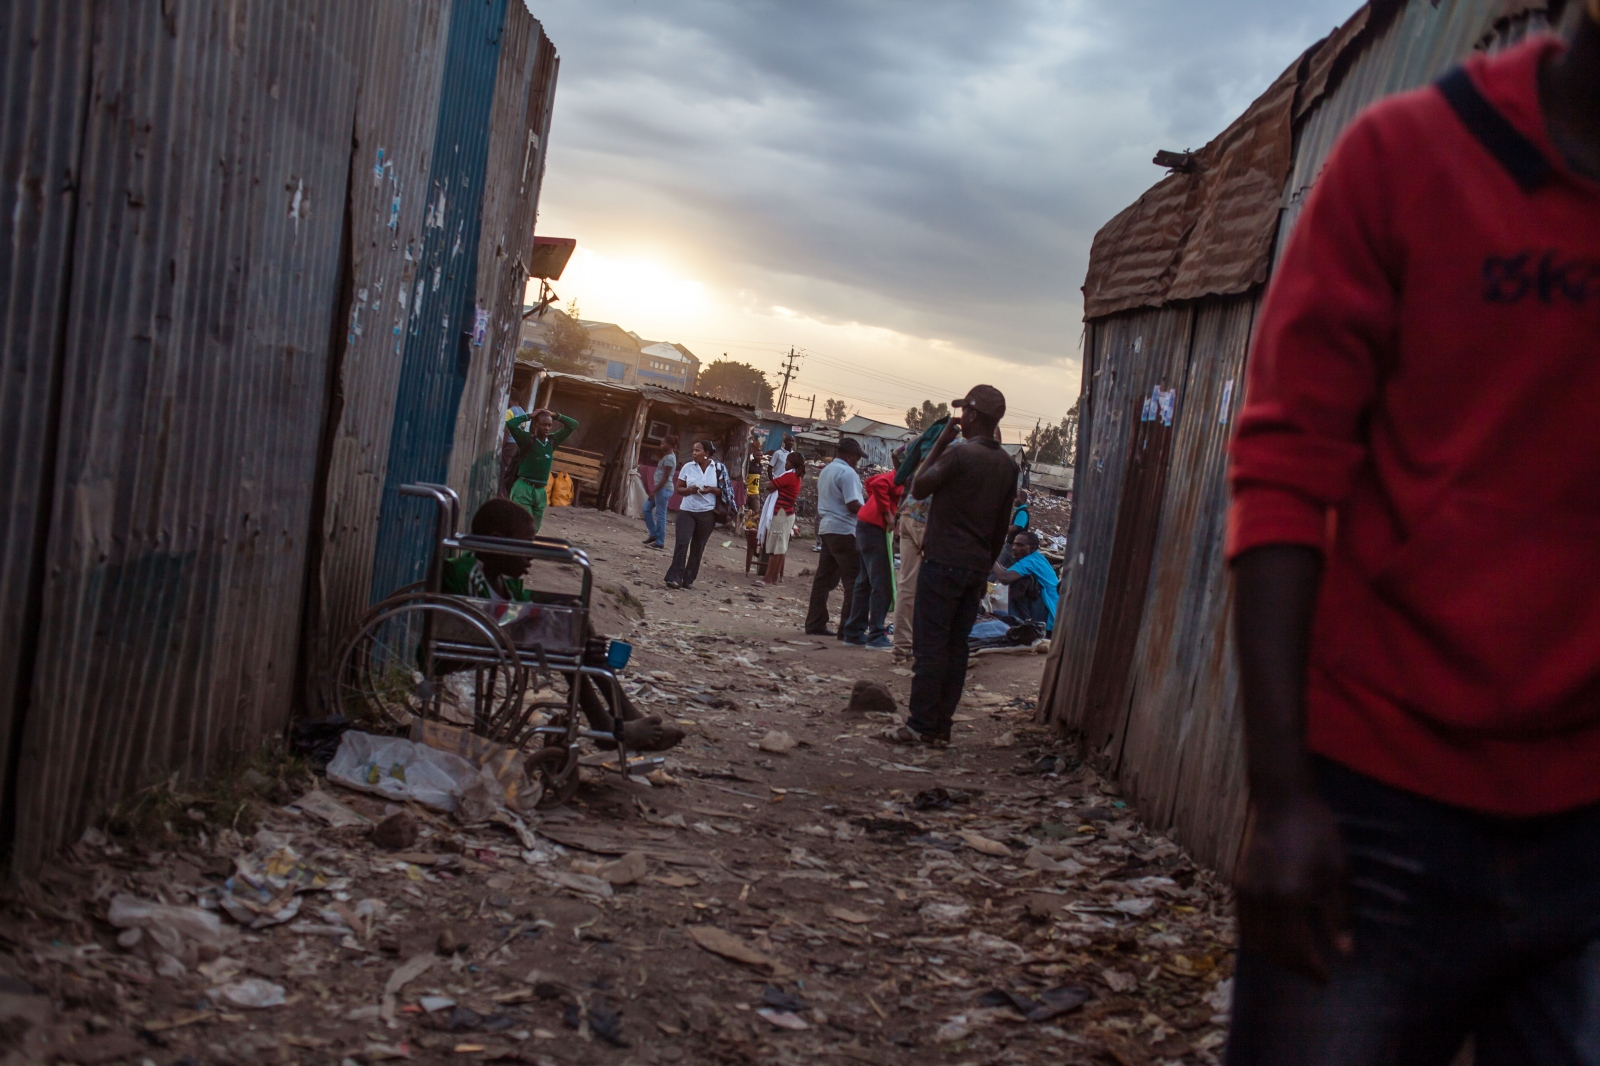 Sinai Slum, Nairobi, KENYA, October 29, 2013: A boy in a wheelchair is begging in an alleyway of Sinai Slum. Sinai is part of the Mathare slum collection with an estimated population of 600.000. Many children who live here do not attend school to help their struggling parents make an additional income.